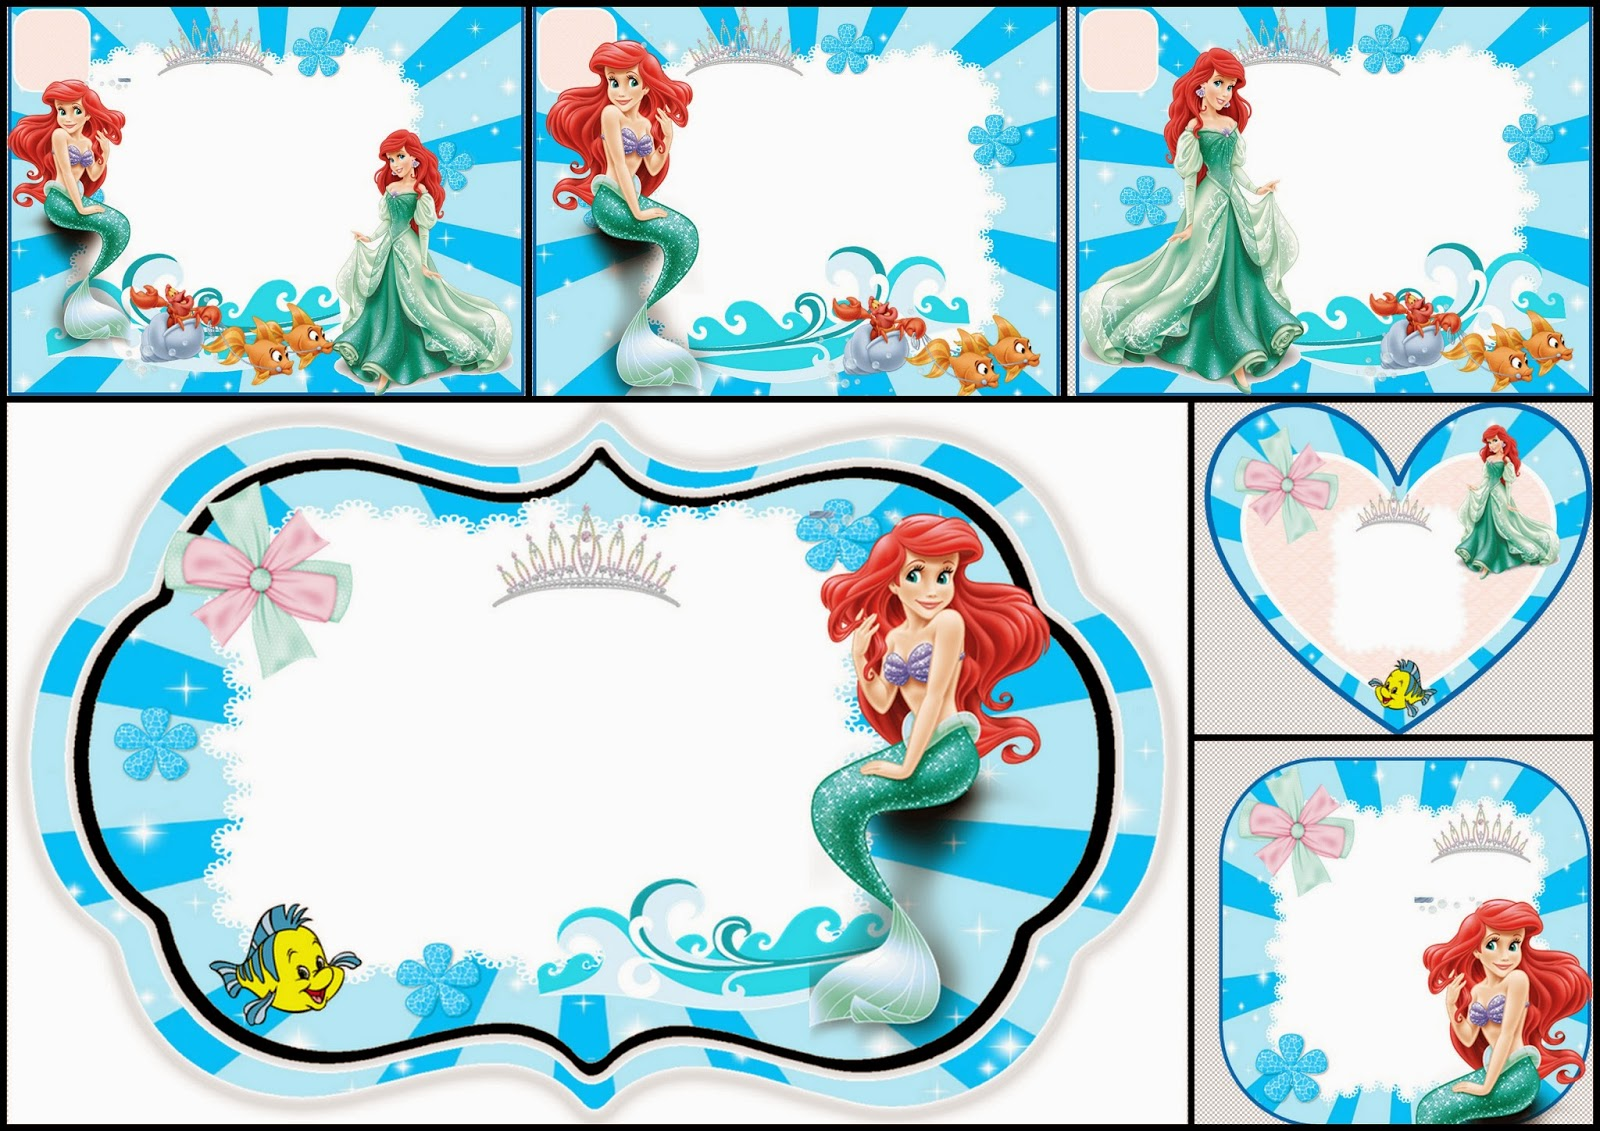 the little mermaid free printable invitations cards or photo frames - Little Mermaid Party Invitations